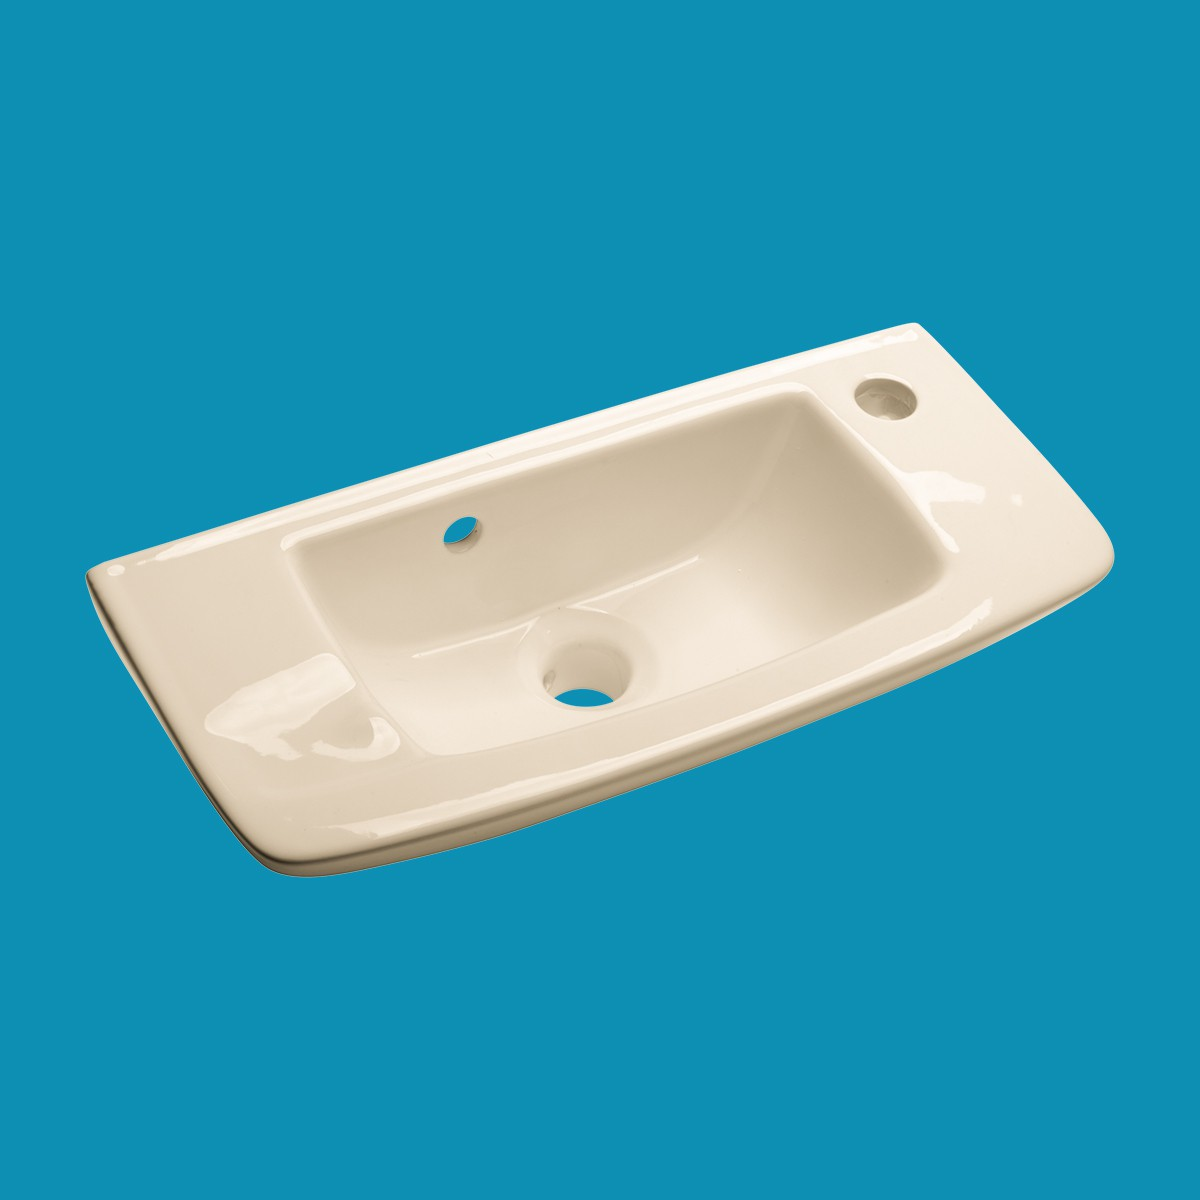 Small wall mounted bathroom sinks - Small Wall Mount Vessel Sink Grade A Vitreous China Scratch And Stain Resistant